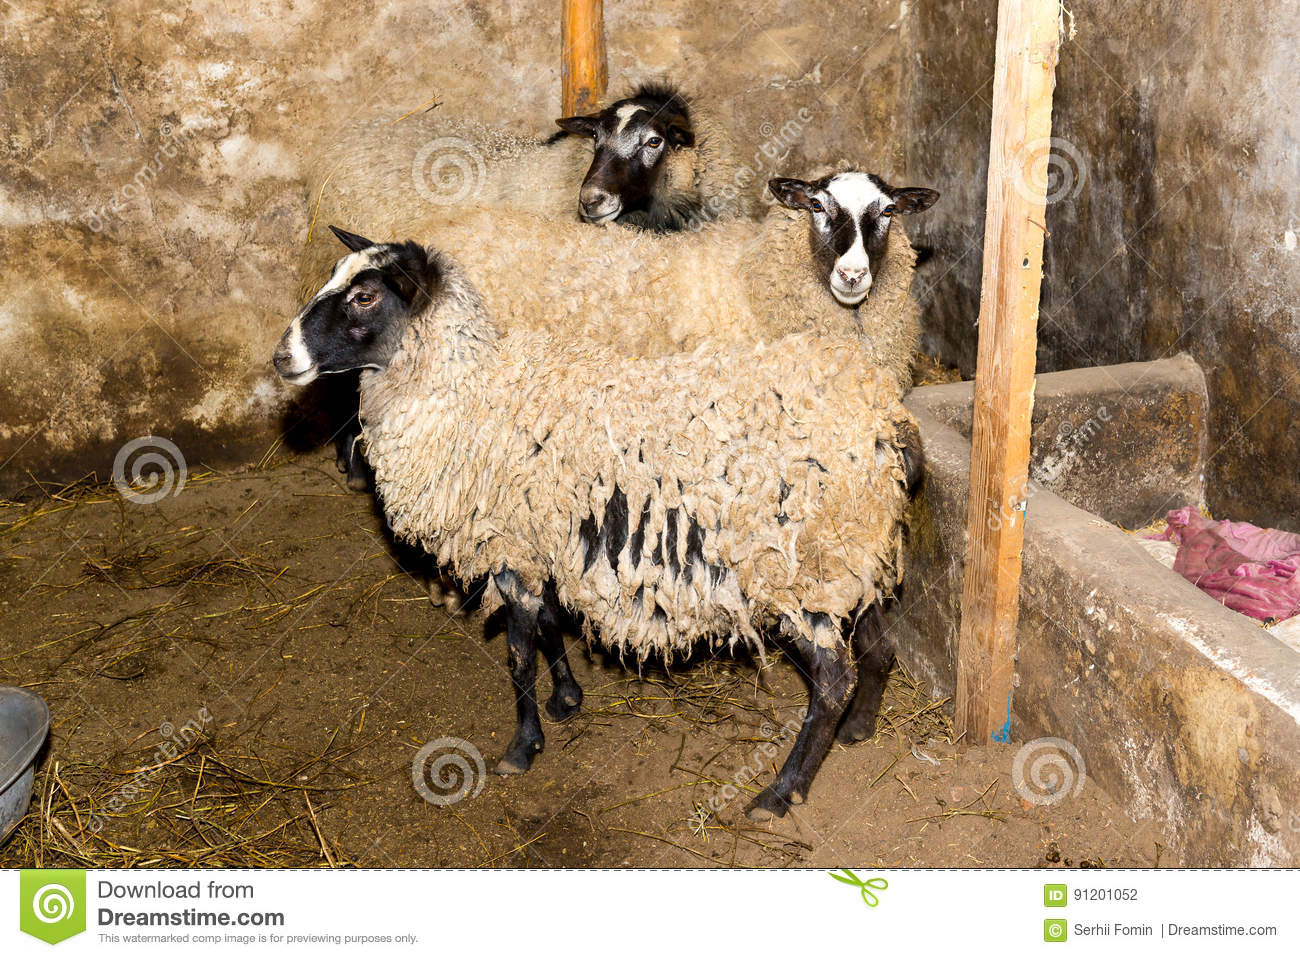 Breeding sheep on a farm. Sheep in the pen close-up.